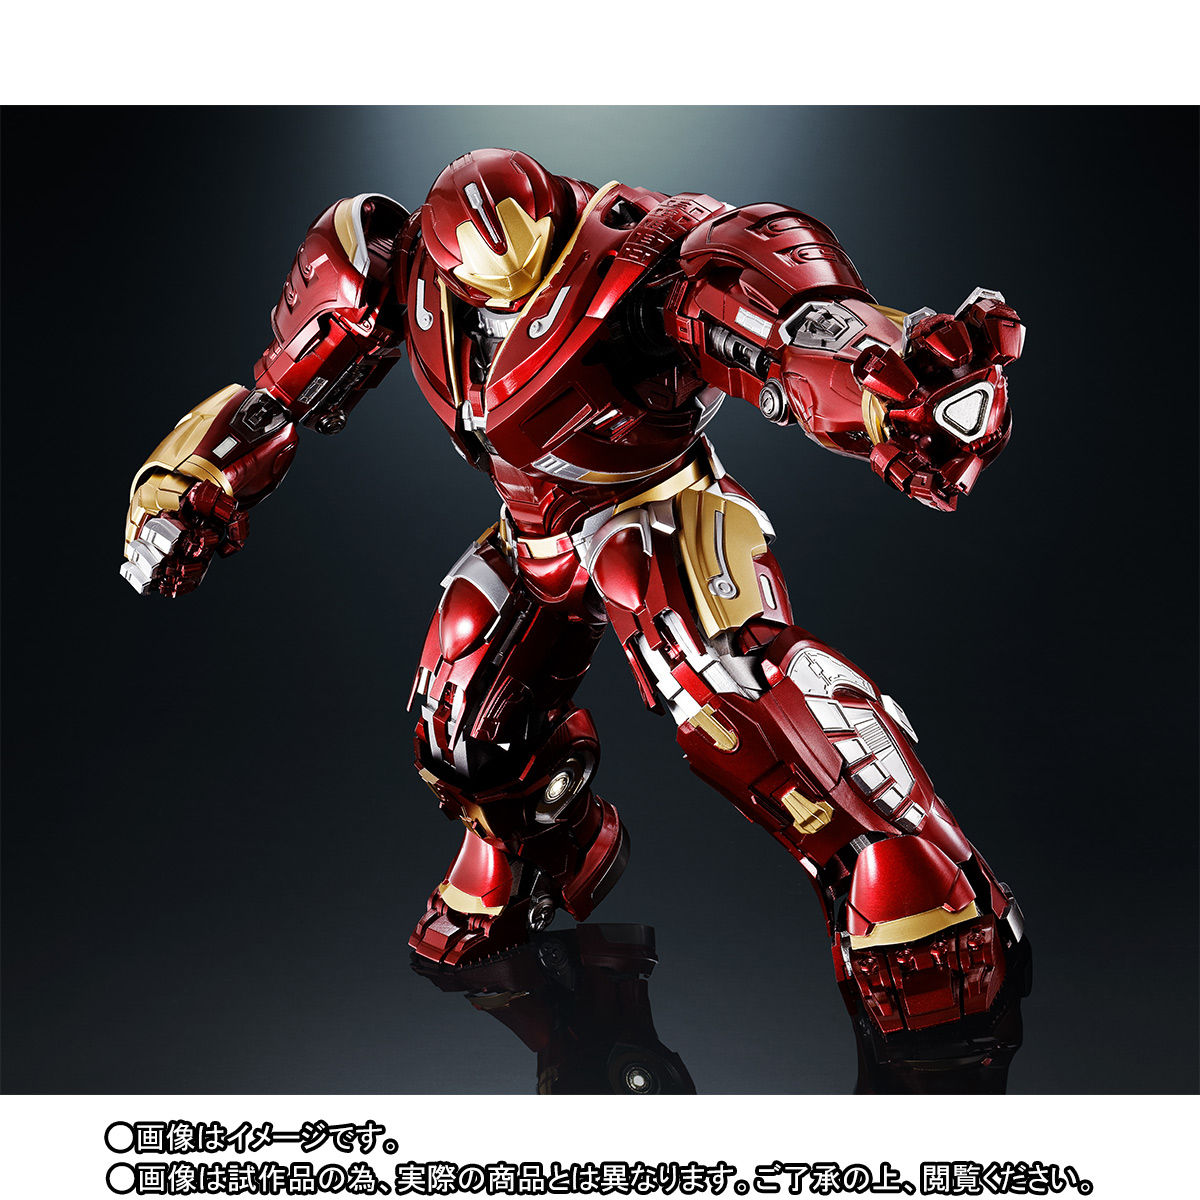 S H Figuarts Avengers Infinity War Hulkbuster 2 0 Coming